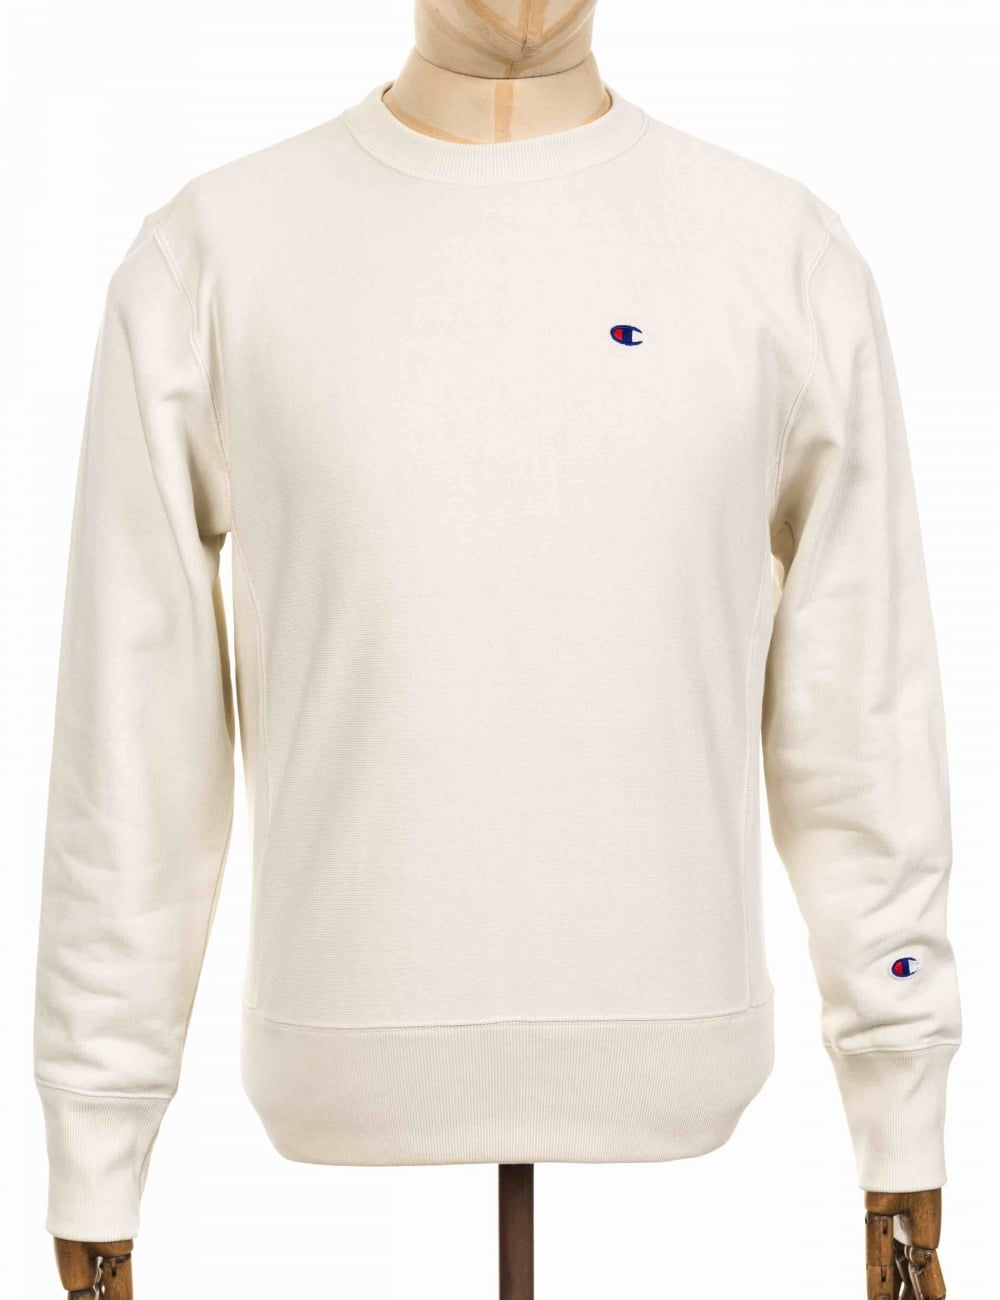 fdffc07a Champion Reverse Weave Crewneck Sweatshirt - VAPY White - Clothing ...